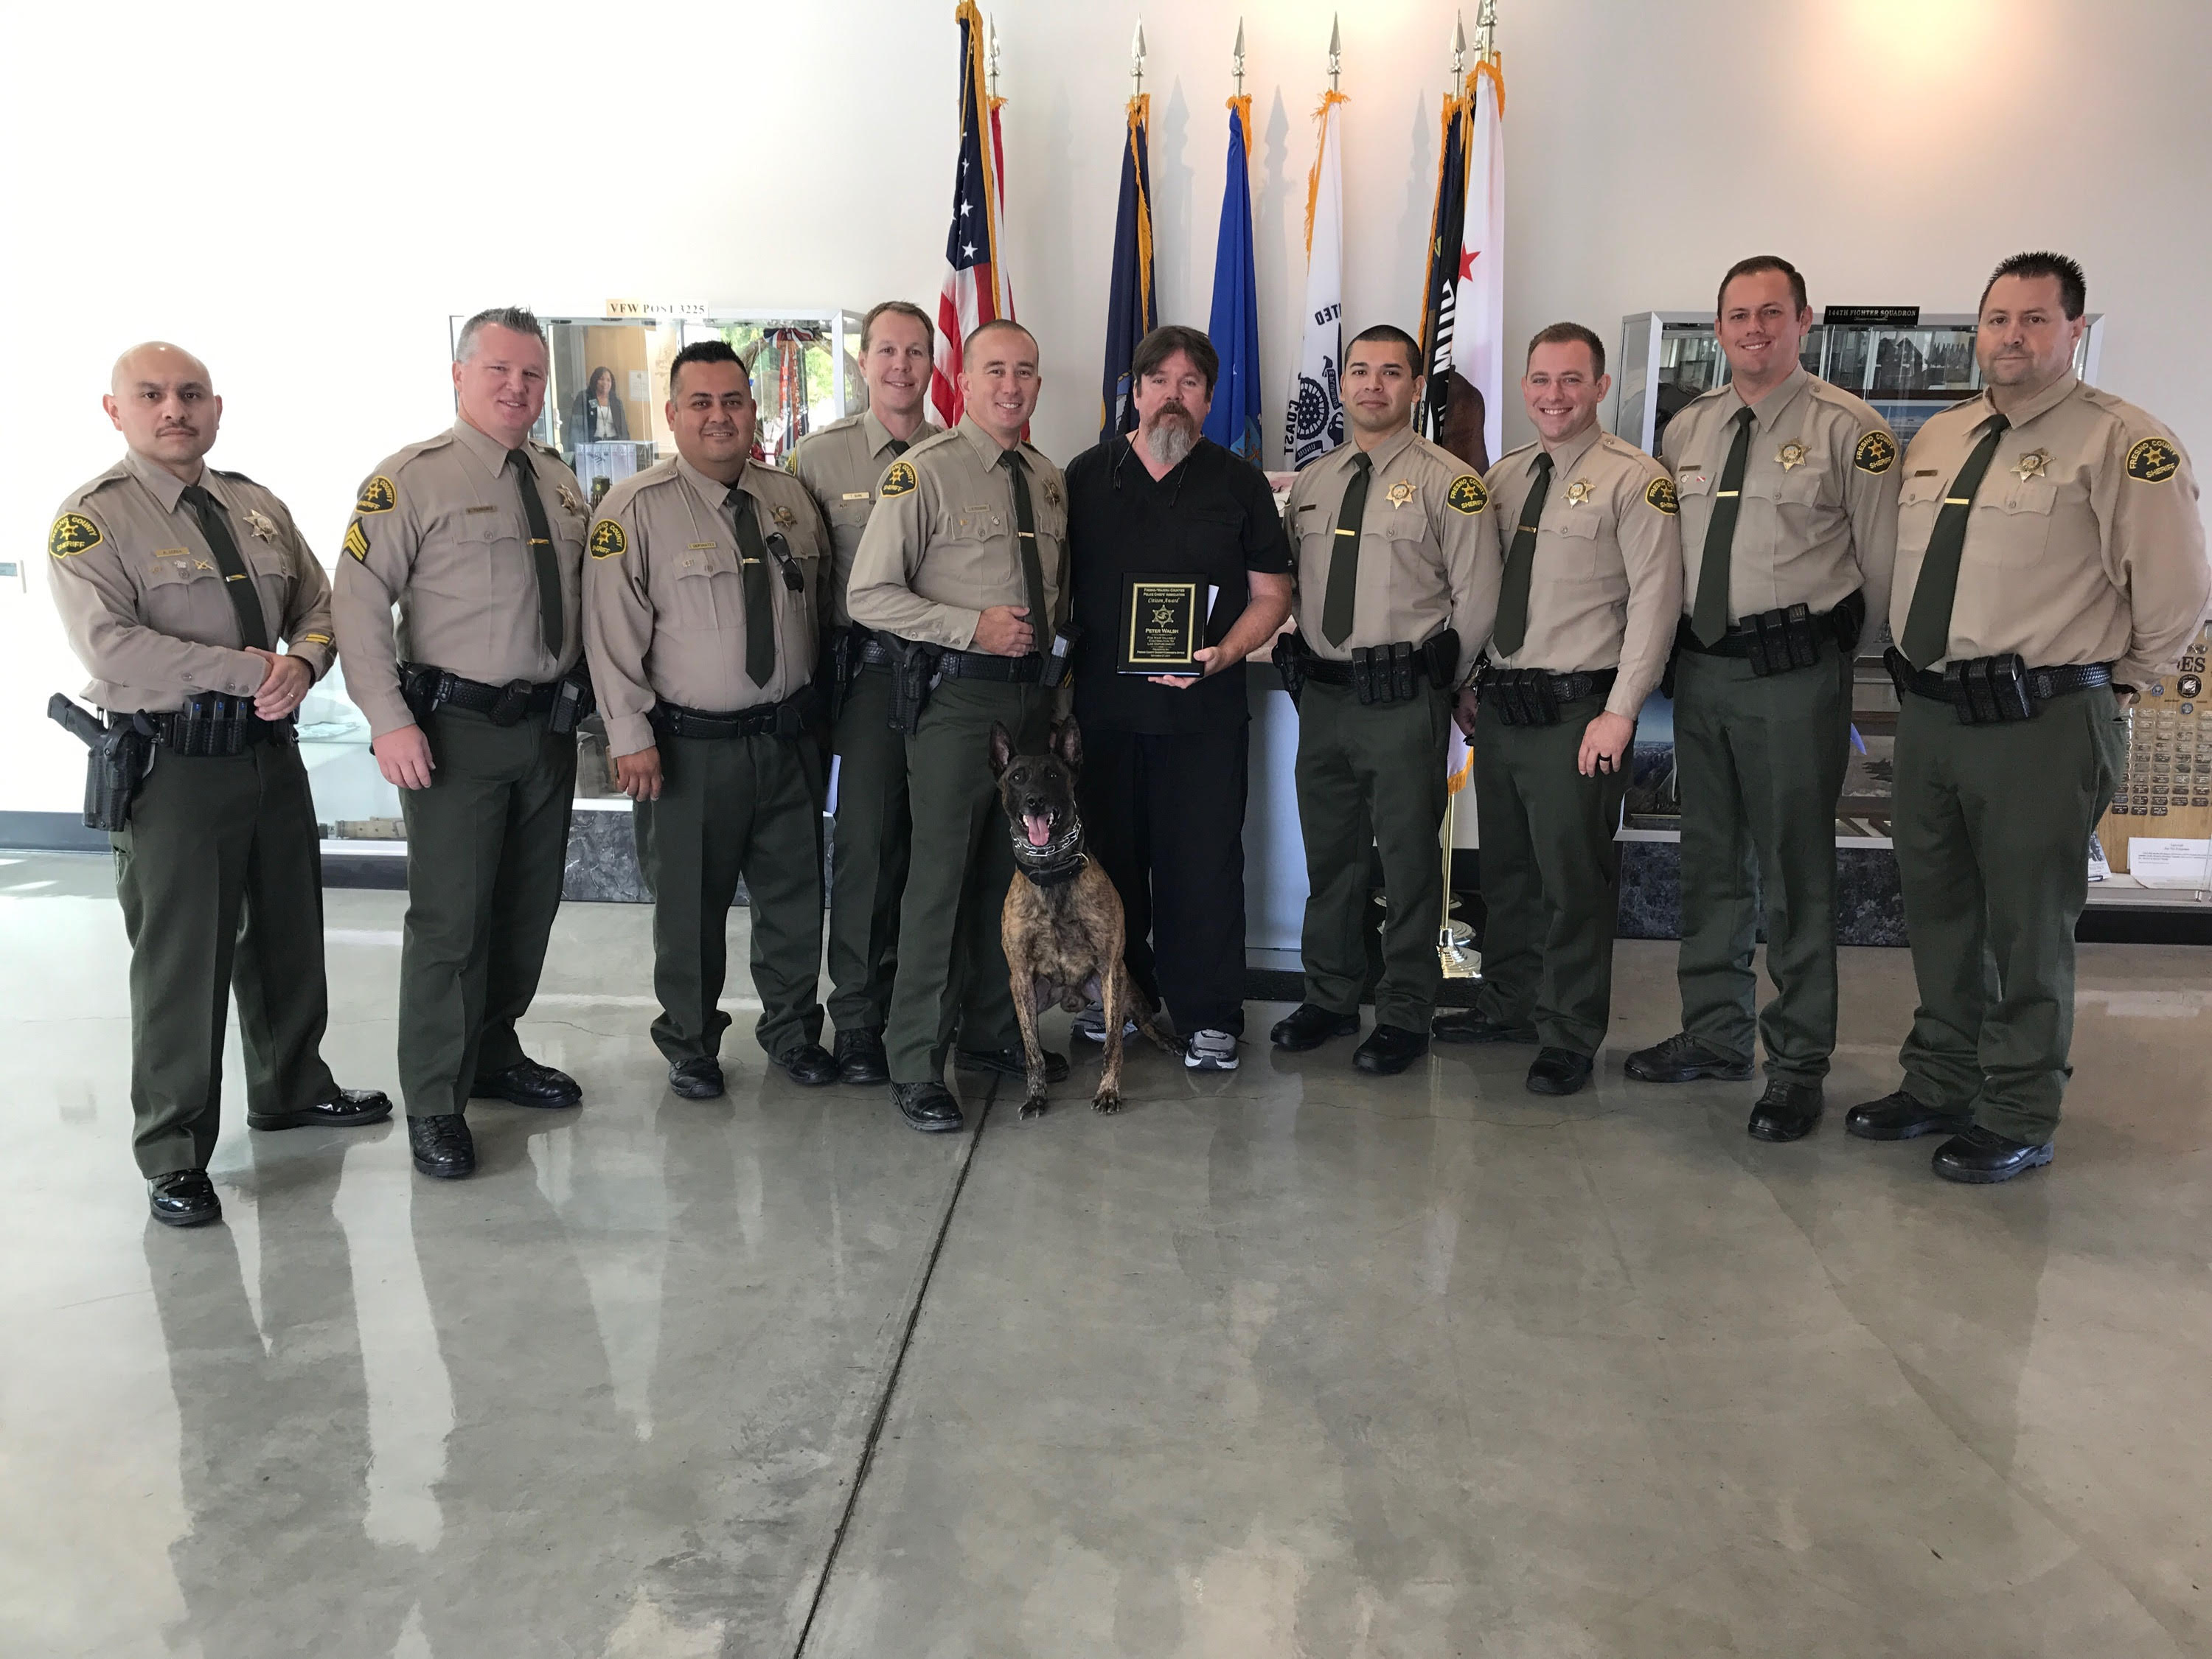 Dr. Walsh With Sheriff department and Service dog